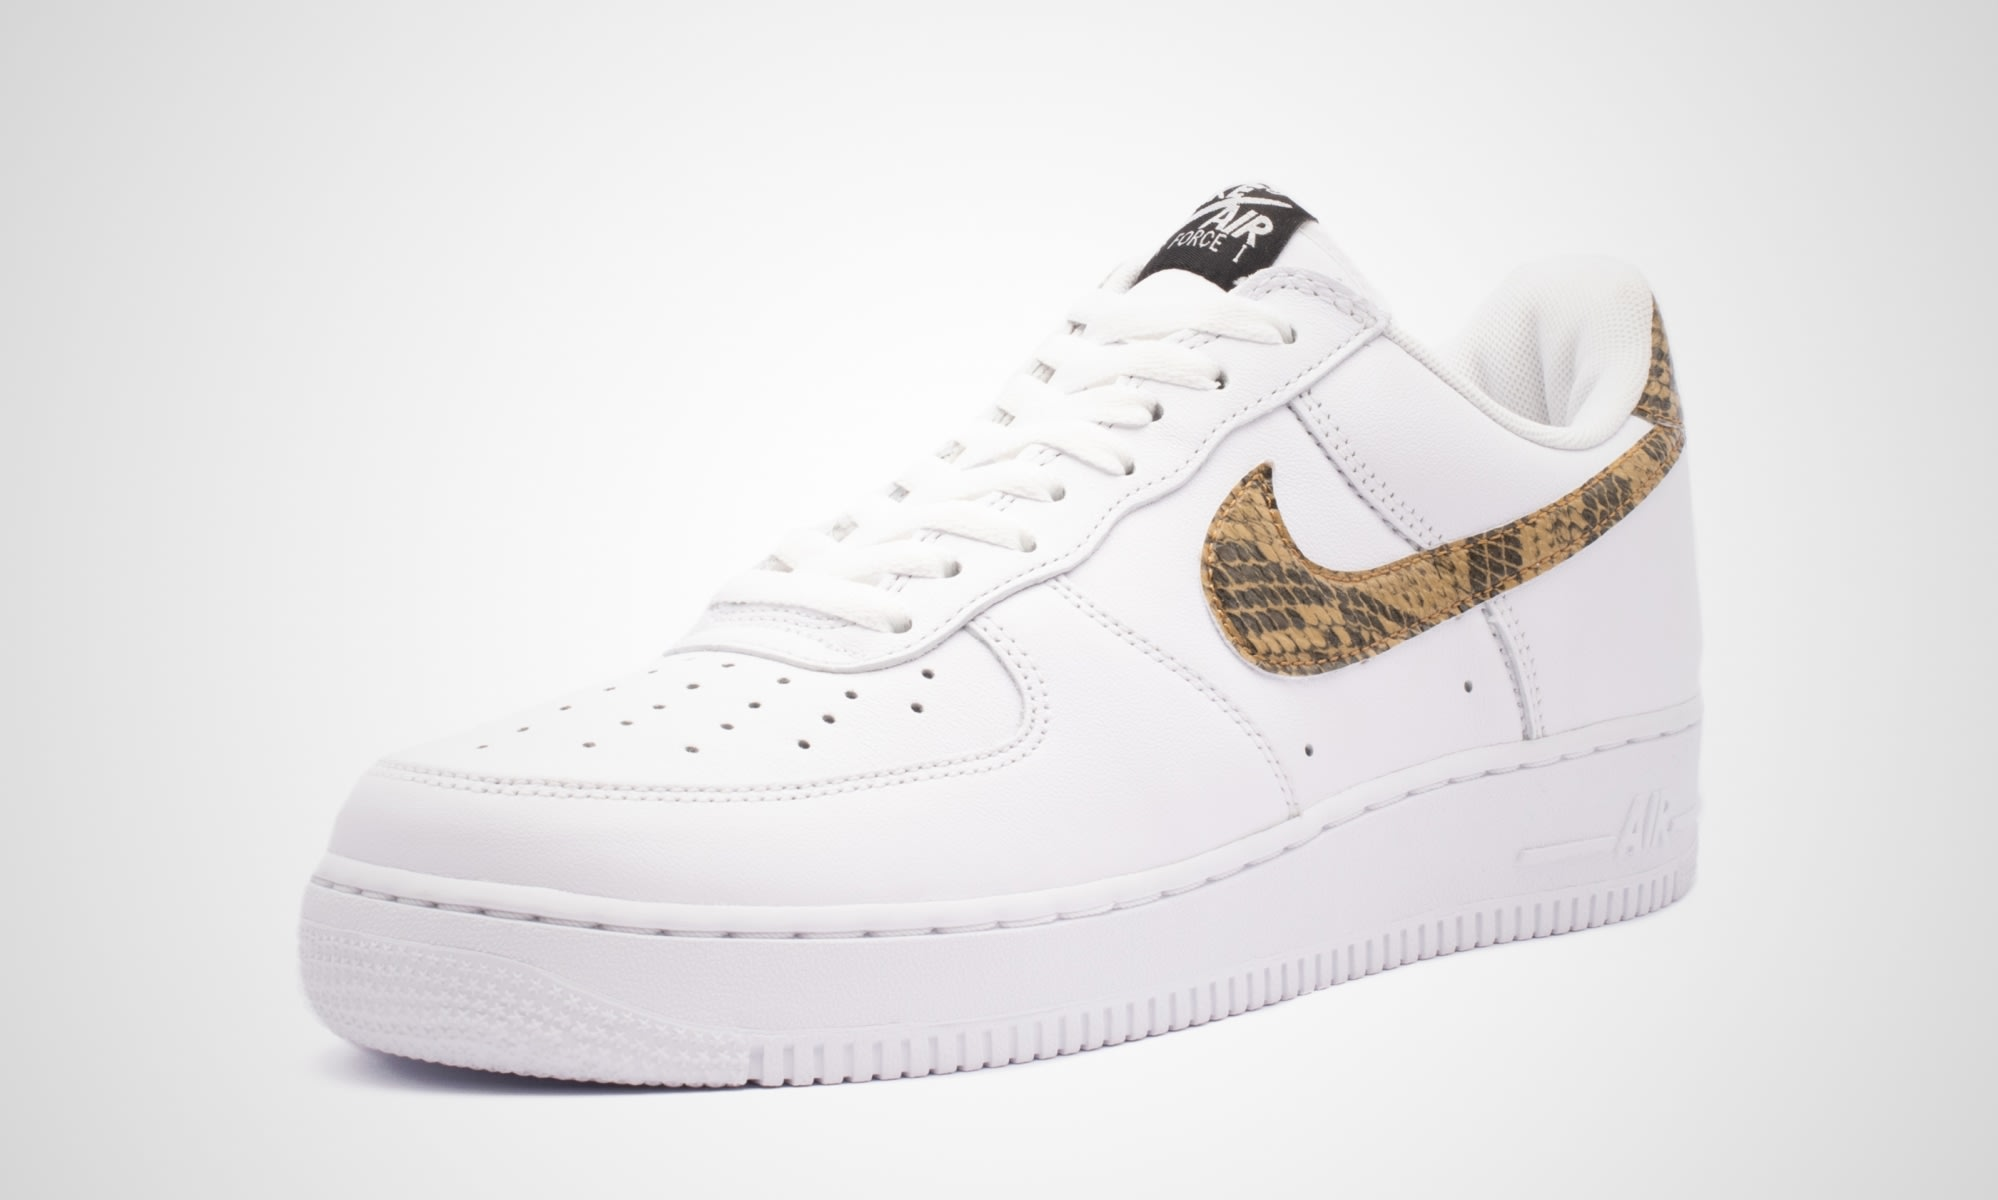 Nike Air Force 1 Low 'Ivory Snake' AO1635-100 (Angle)